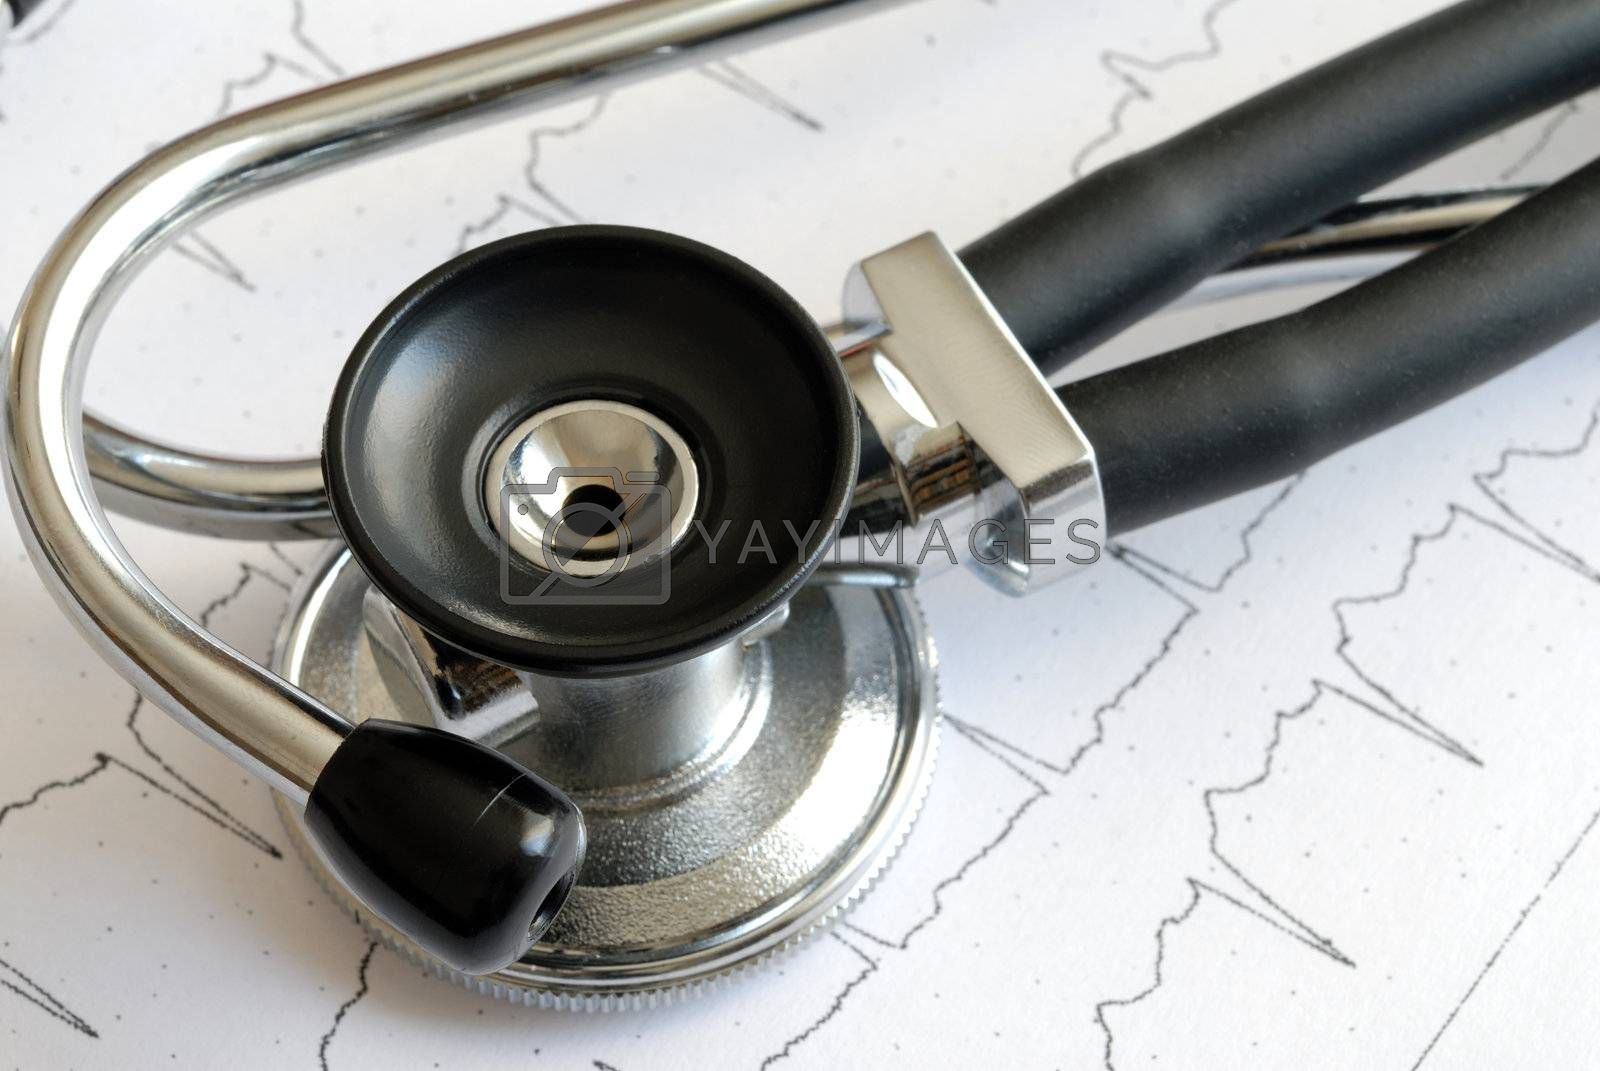 Macro of stethoscope lying on ECG diagram